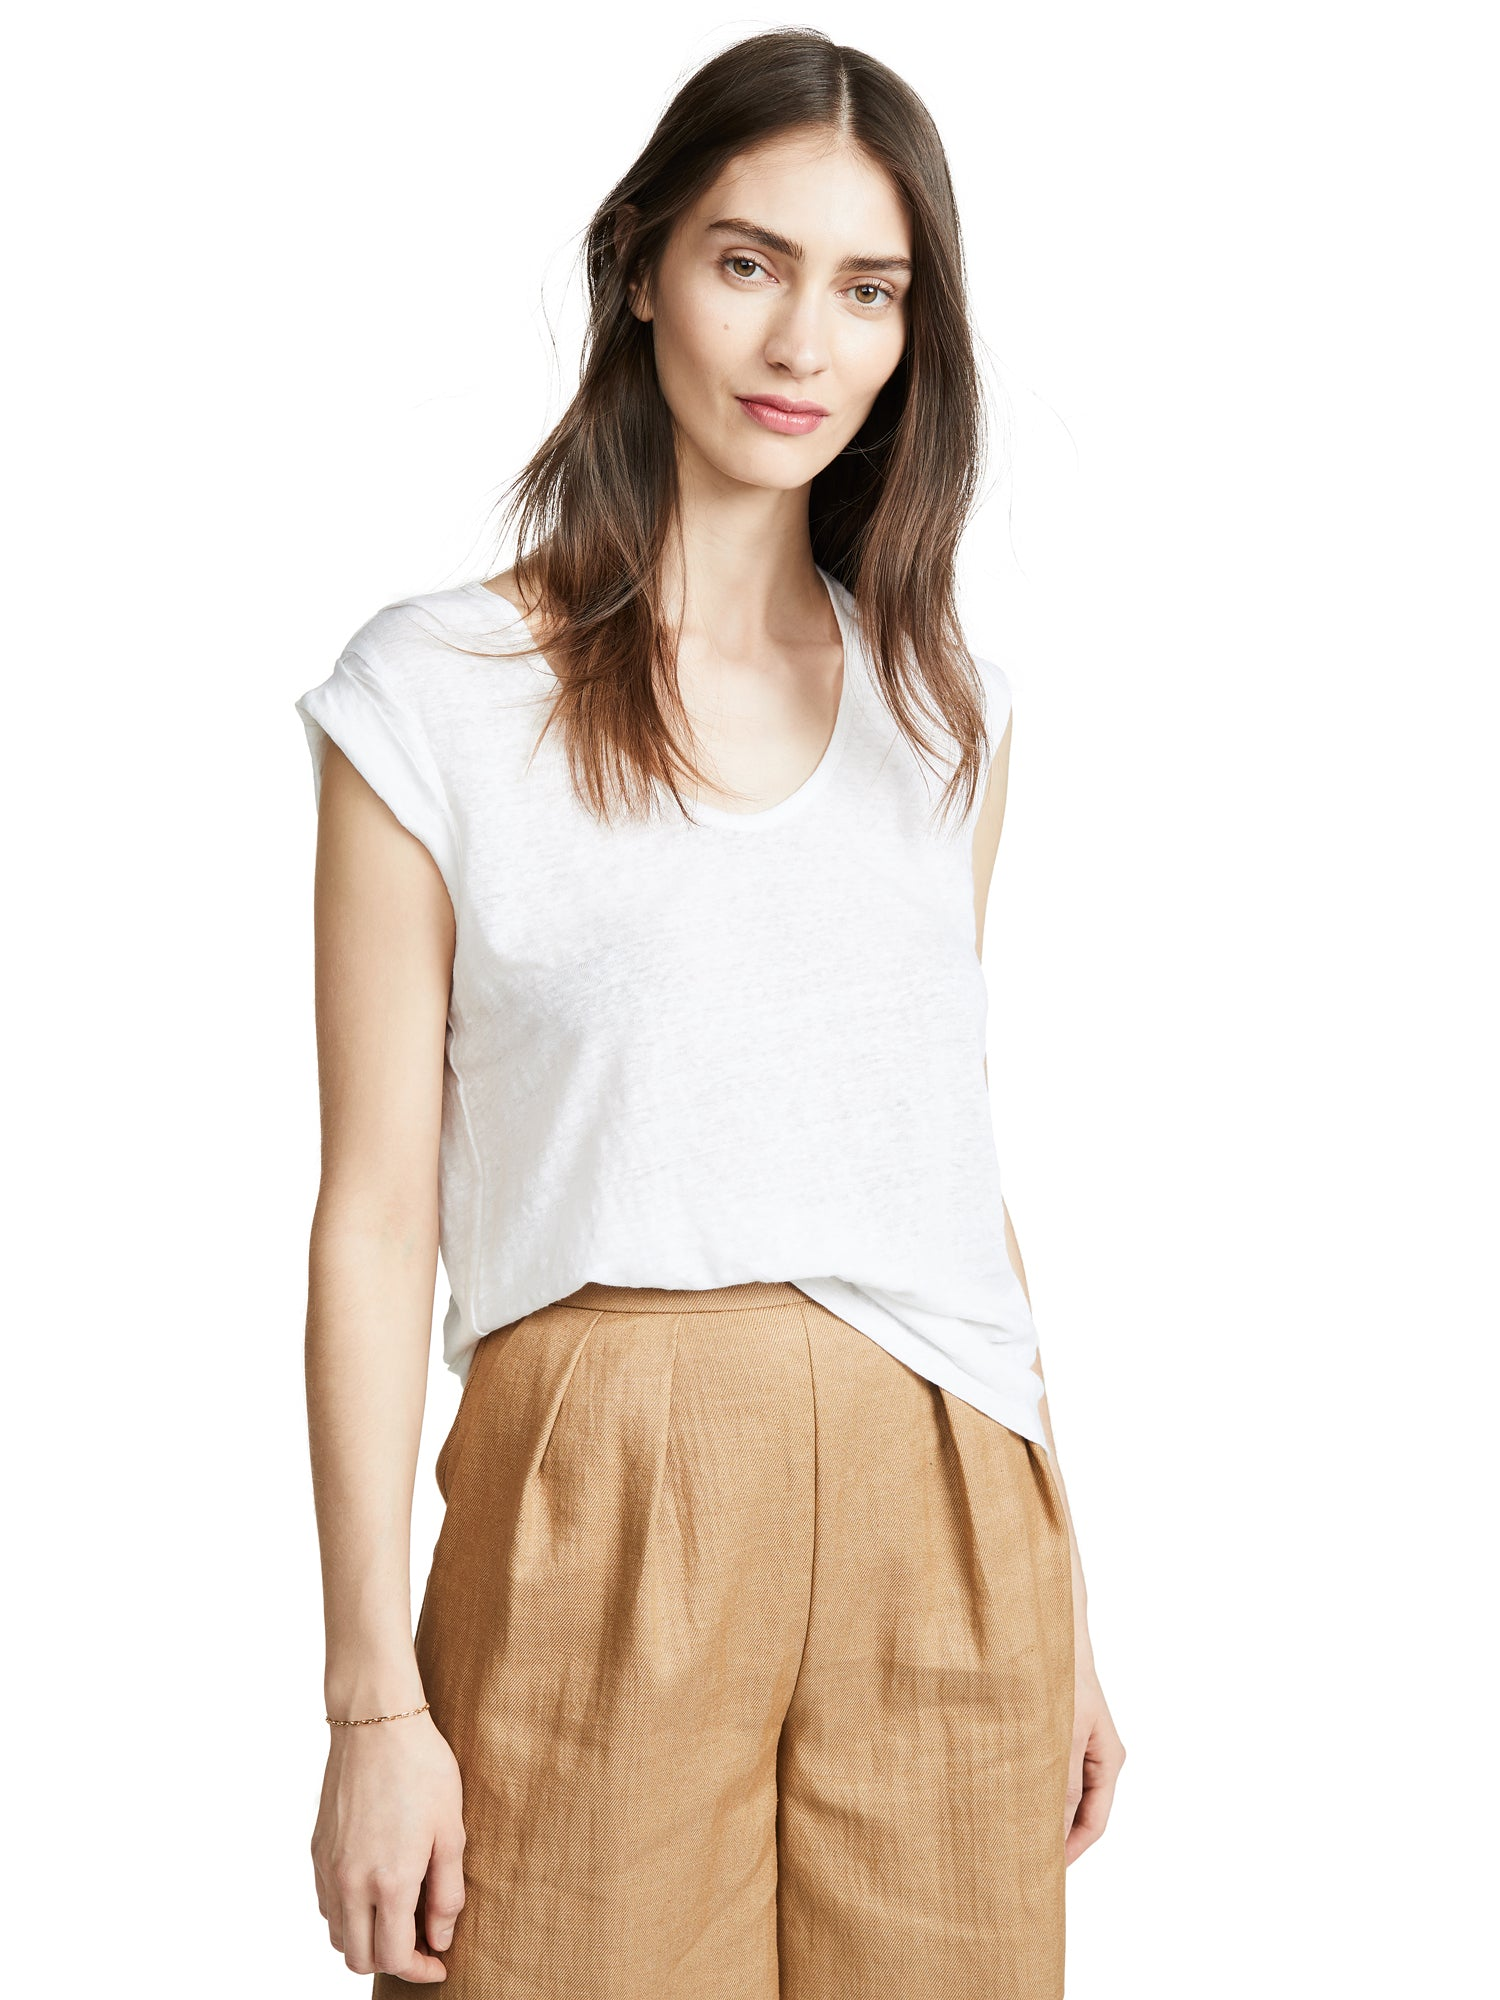 TILDEN | Joie Averit Top